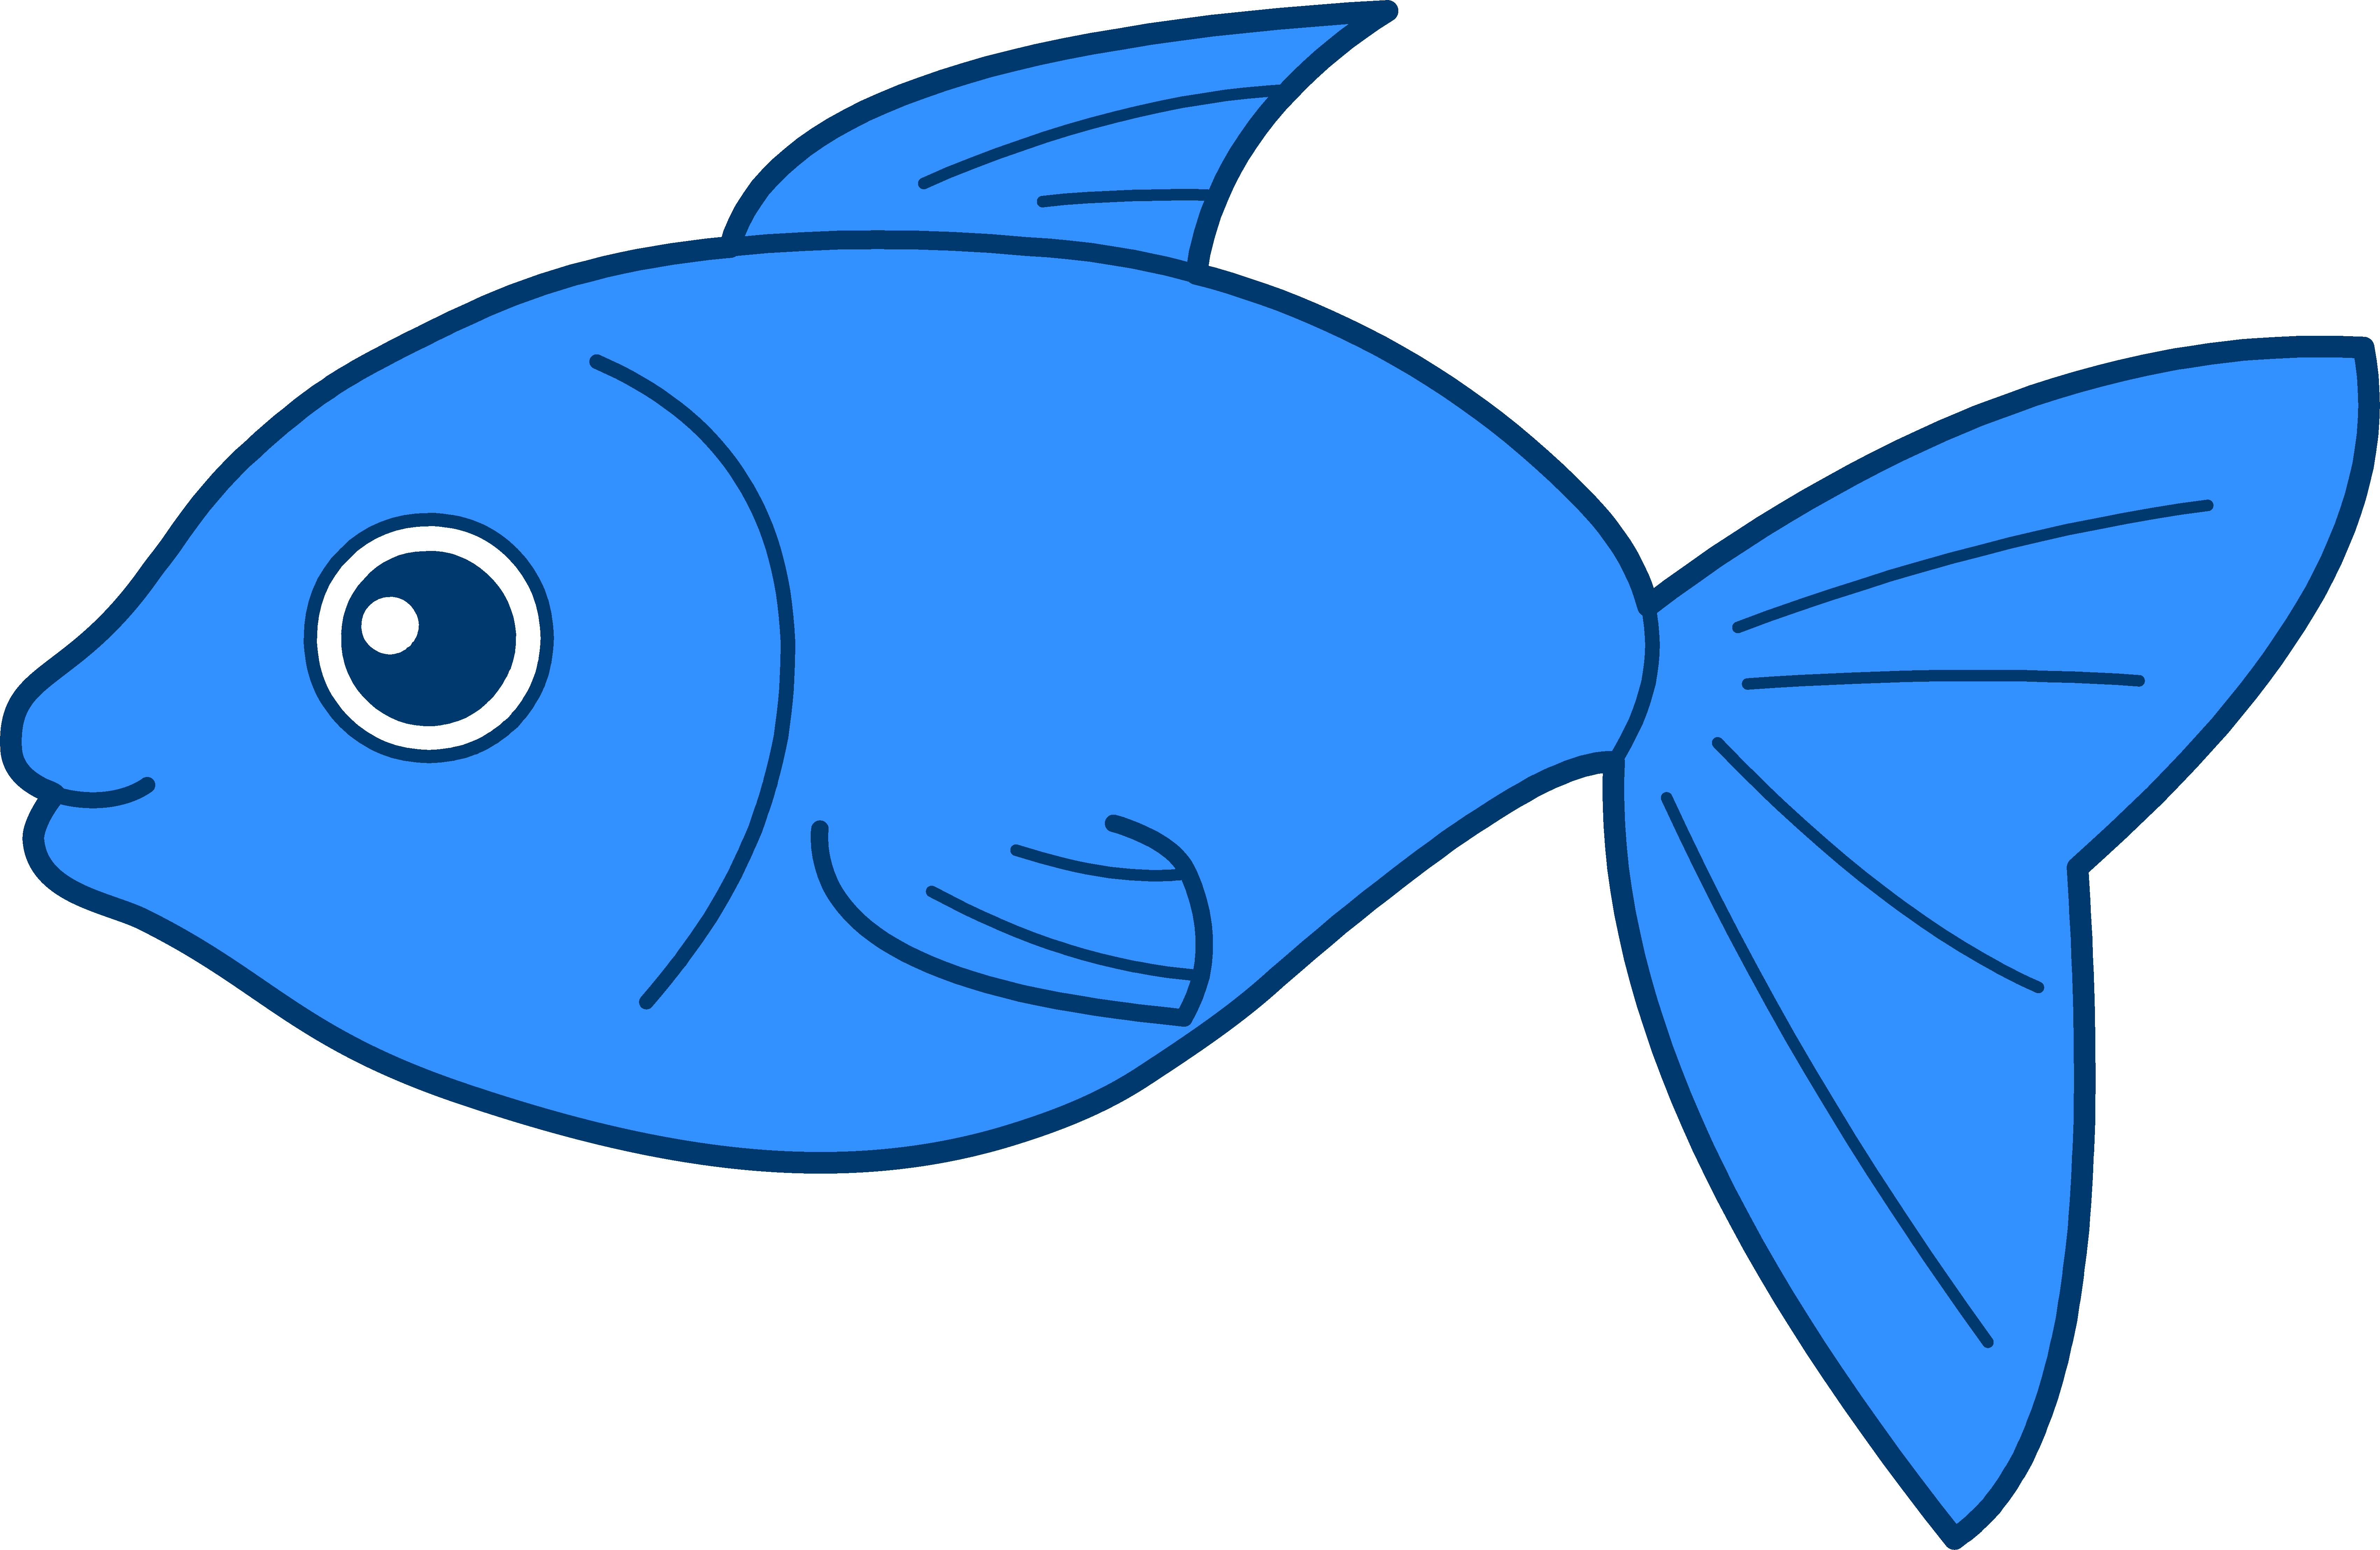 Blue Fish Clip Art   Clipart library - Free Clipart Images